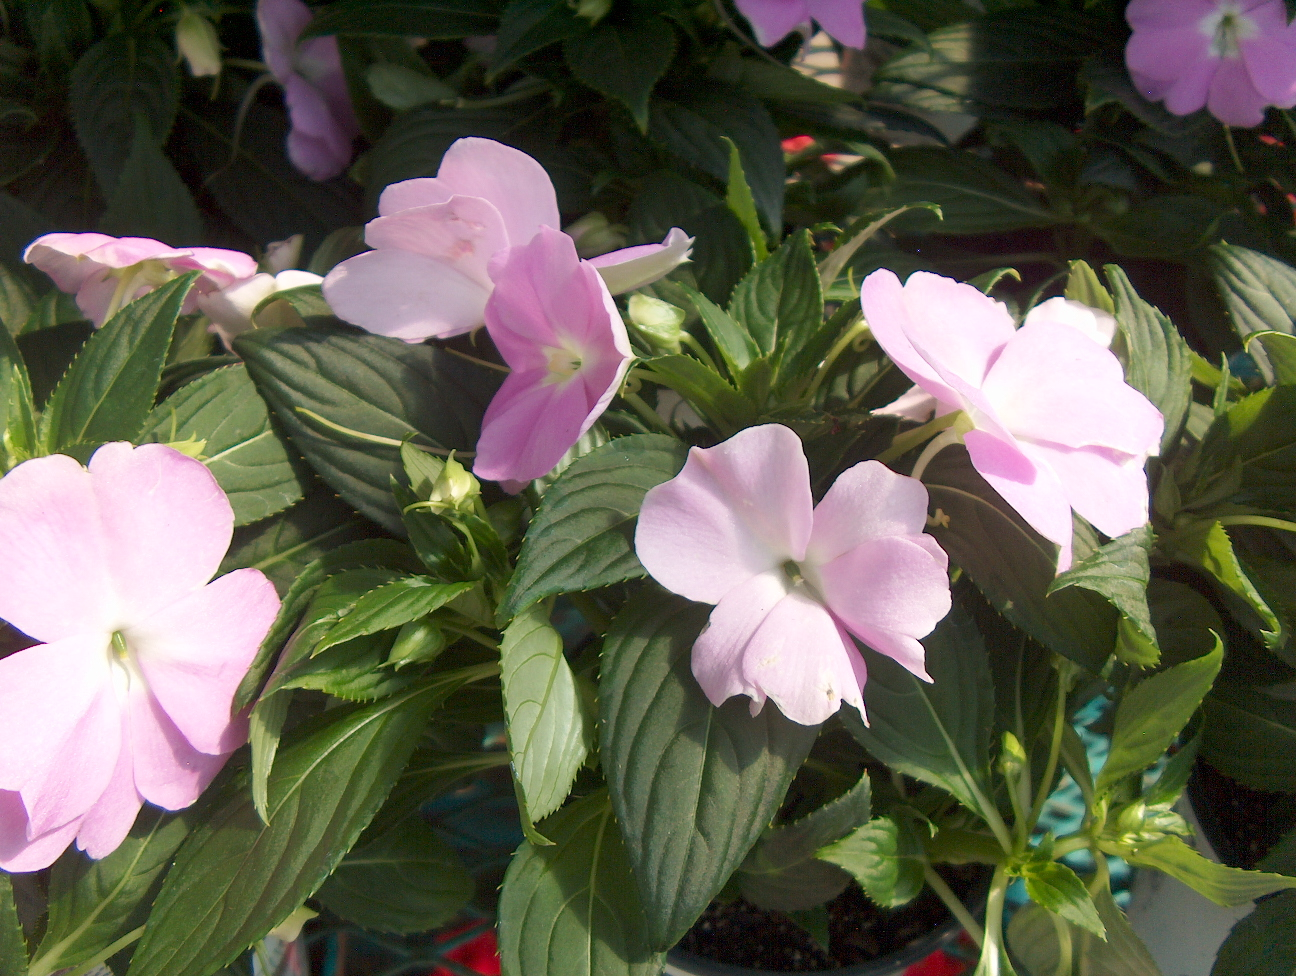 Impatiens 'New Guinea'  / Impatiens 'New Guinea'